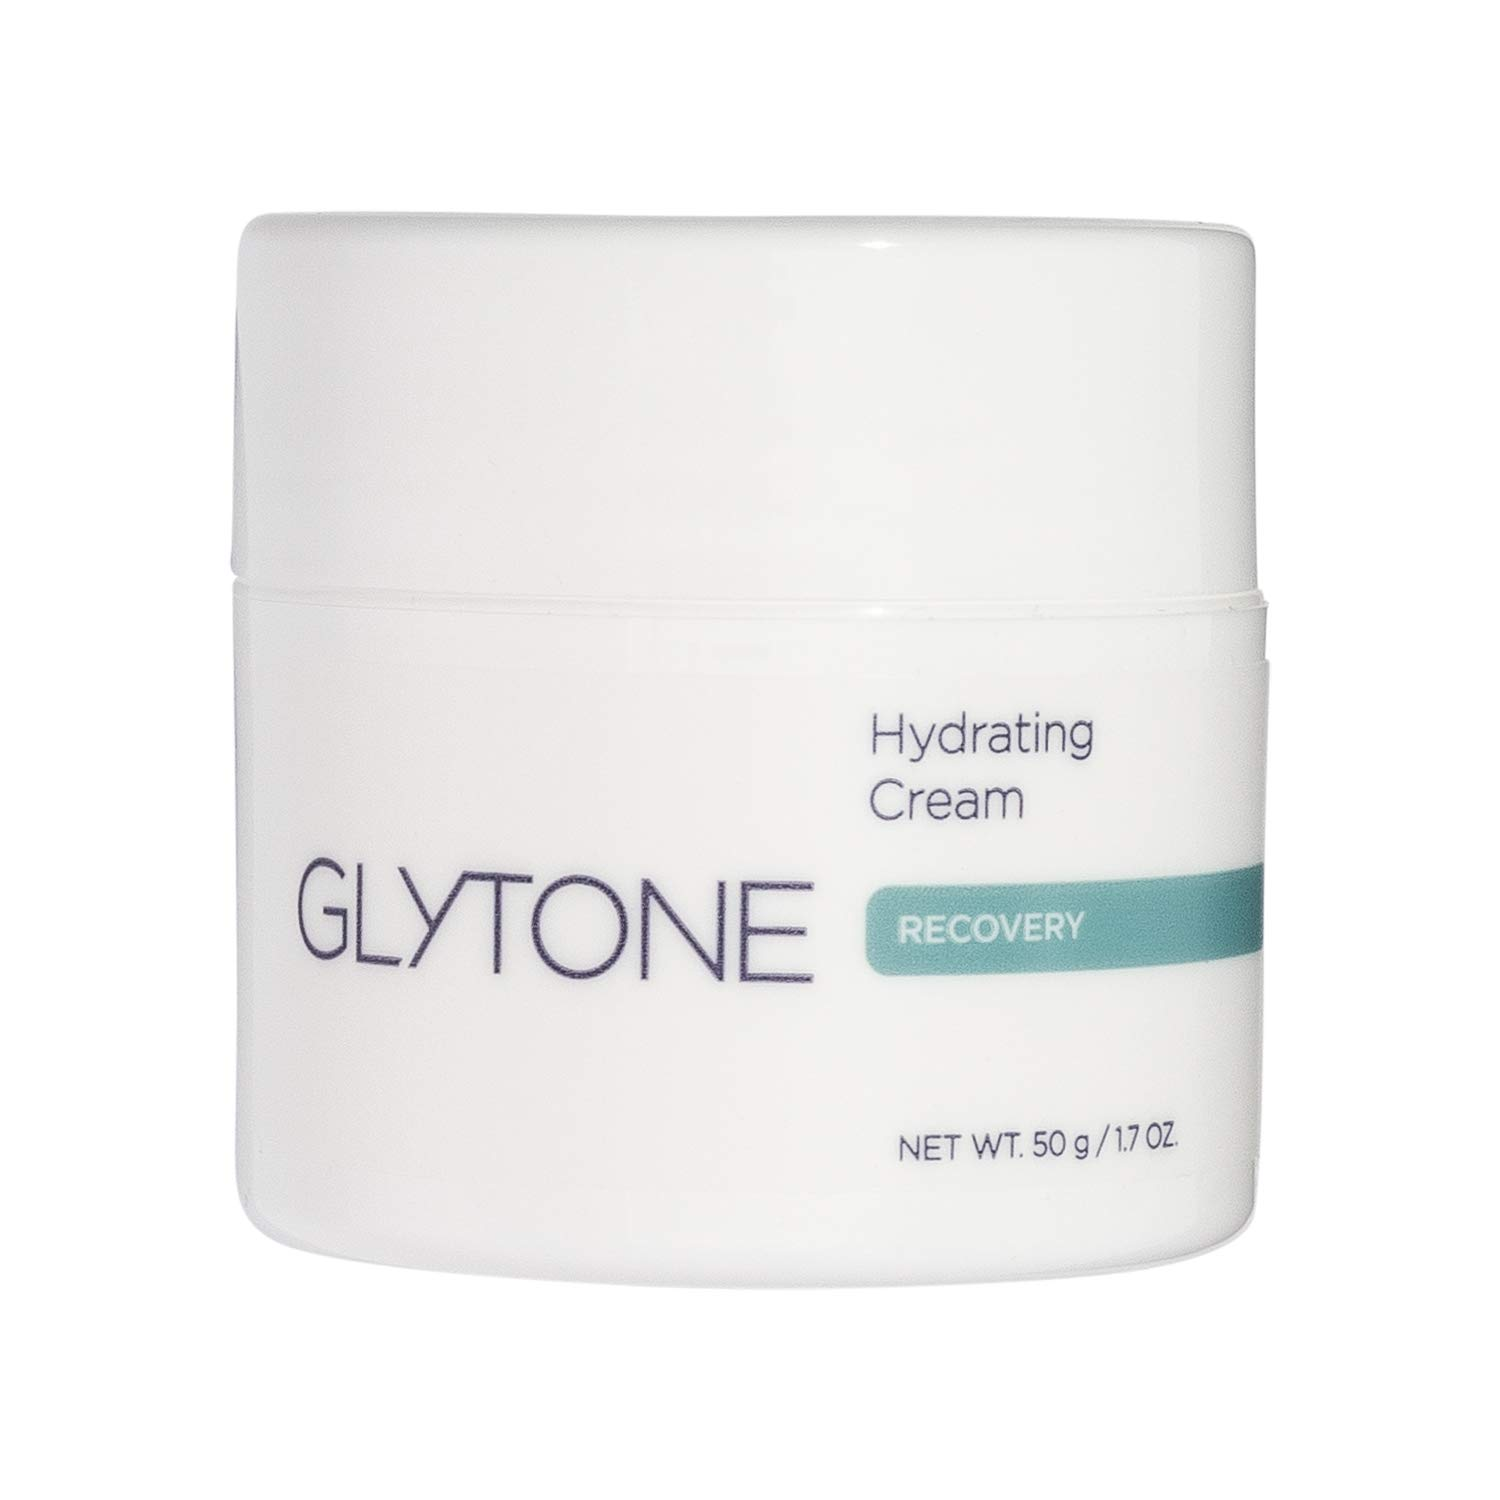 Glytone Hydrating Cream, Rich Non-Greasy with Glycerin and Sorbitol Face Moisturizer, Non-Comedogenic, Fragrance-Free, 1.7 oz.